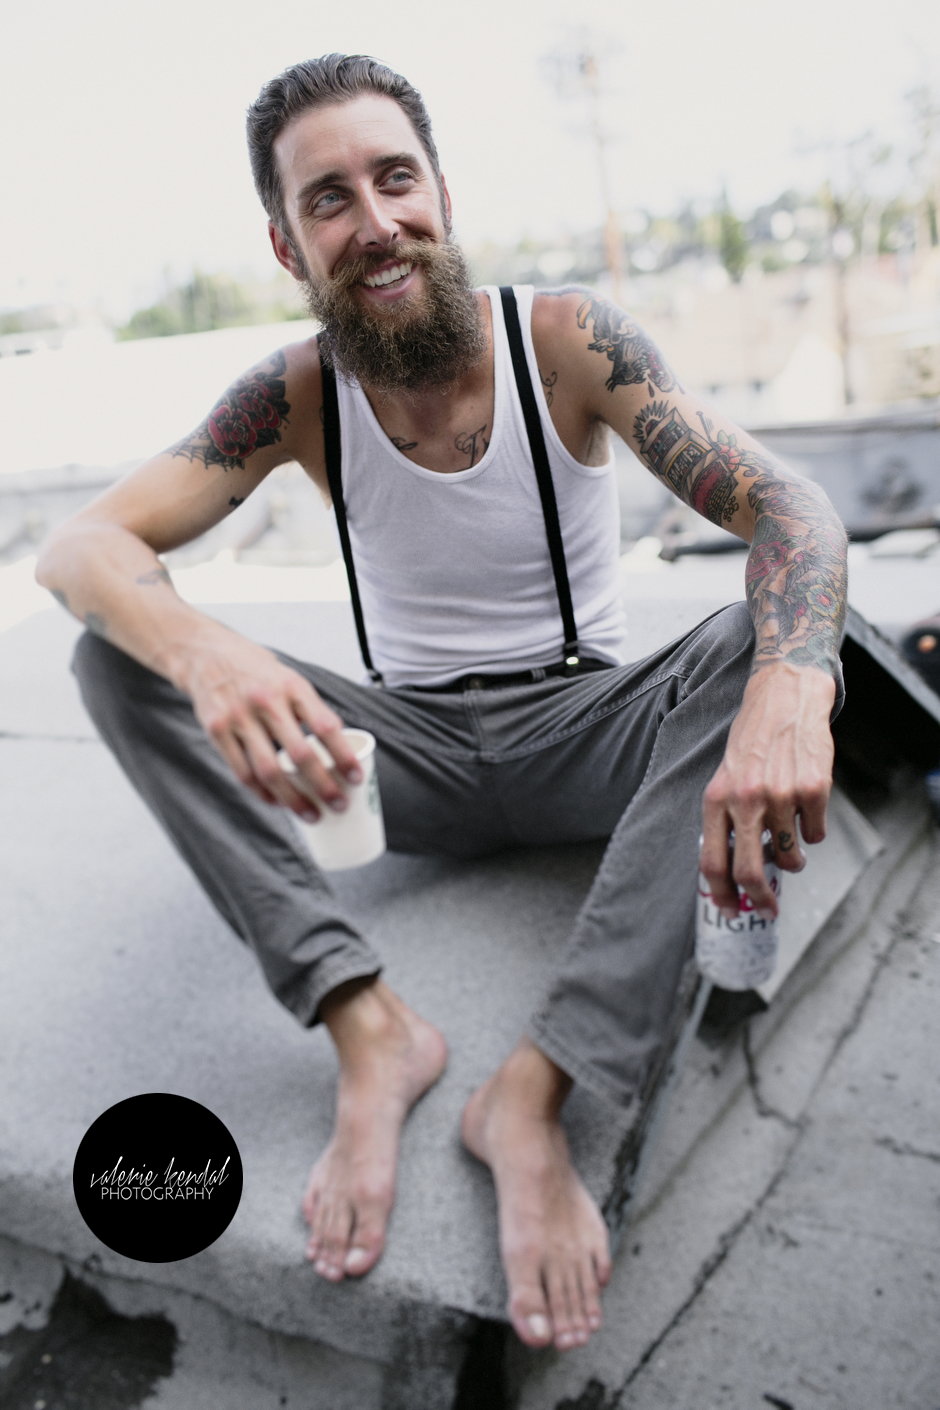 Los-Angeles-Tattoo-Suspenders-Commercial-Lifestyle-Rooftop-Valerie-Kendal-Photography -Mark B 868.JPG